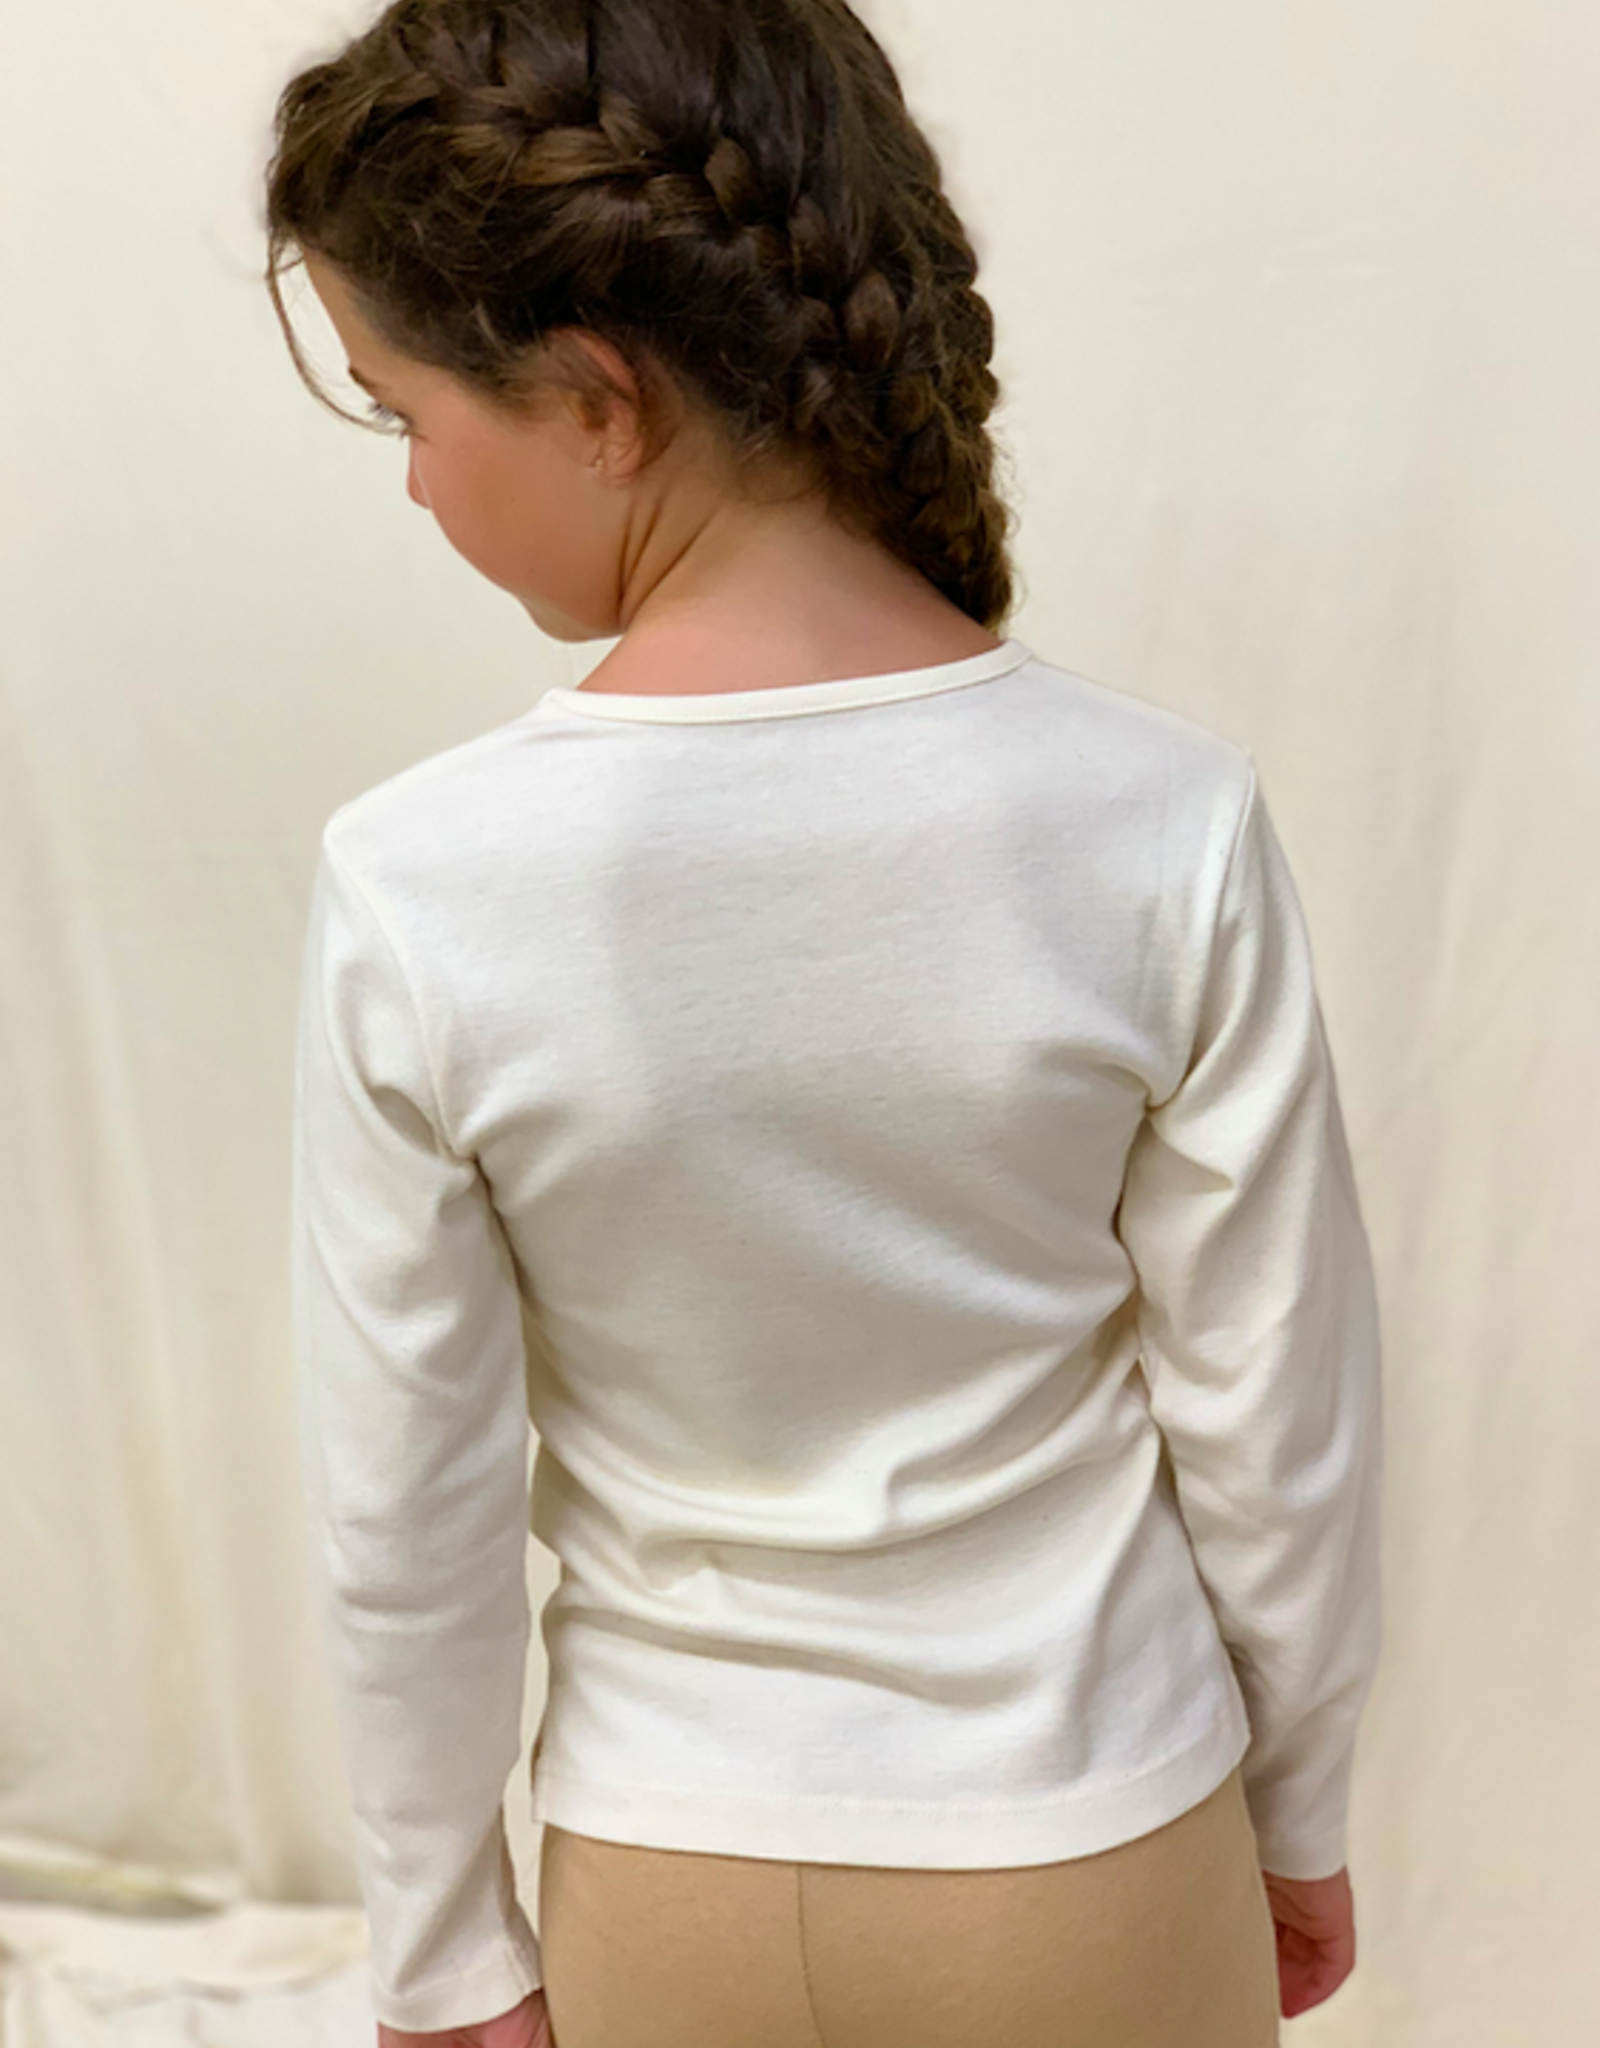 Junior long sleeve shirt with v-neck. sizes 2, 4, 6 years.